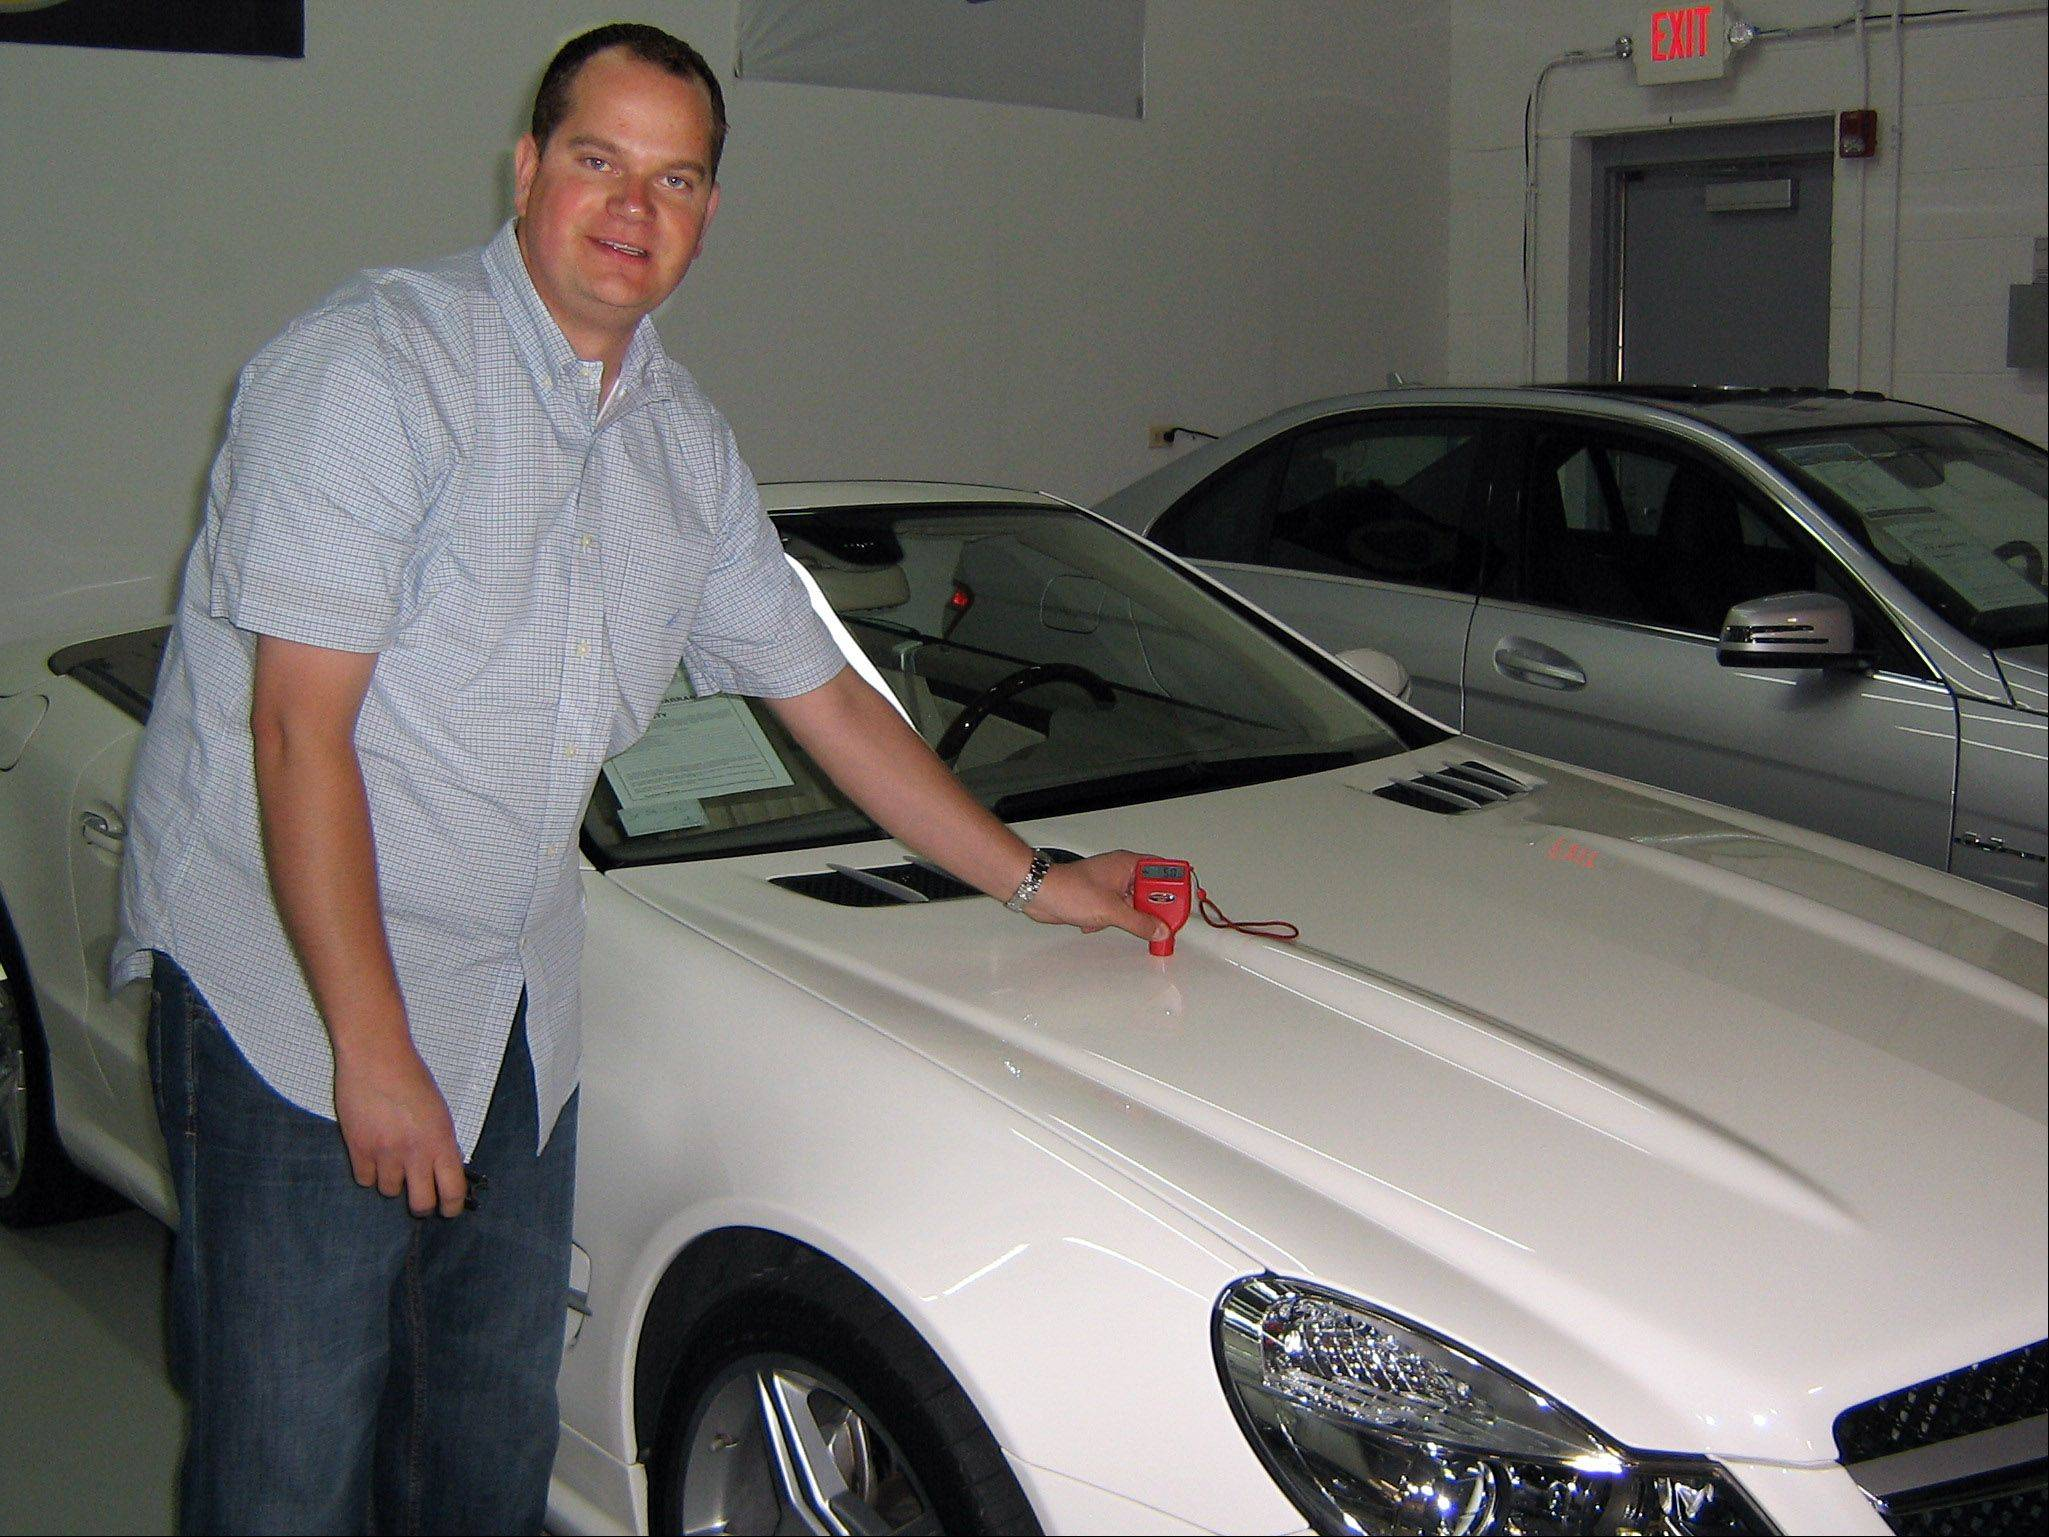 Benjamin Ripstein, owner of Midwest Motors Inc., who went before the Lake Zurich planning commission Wednesday, said his business is not the typical used car lot with ribbons and banners, but an Internet operation that sells luxury cars averaging $50,000.